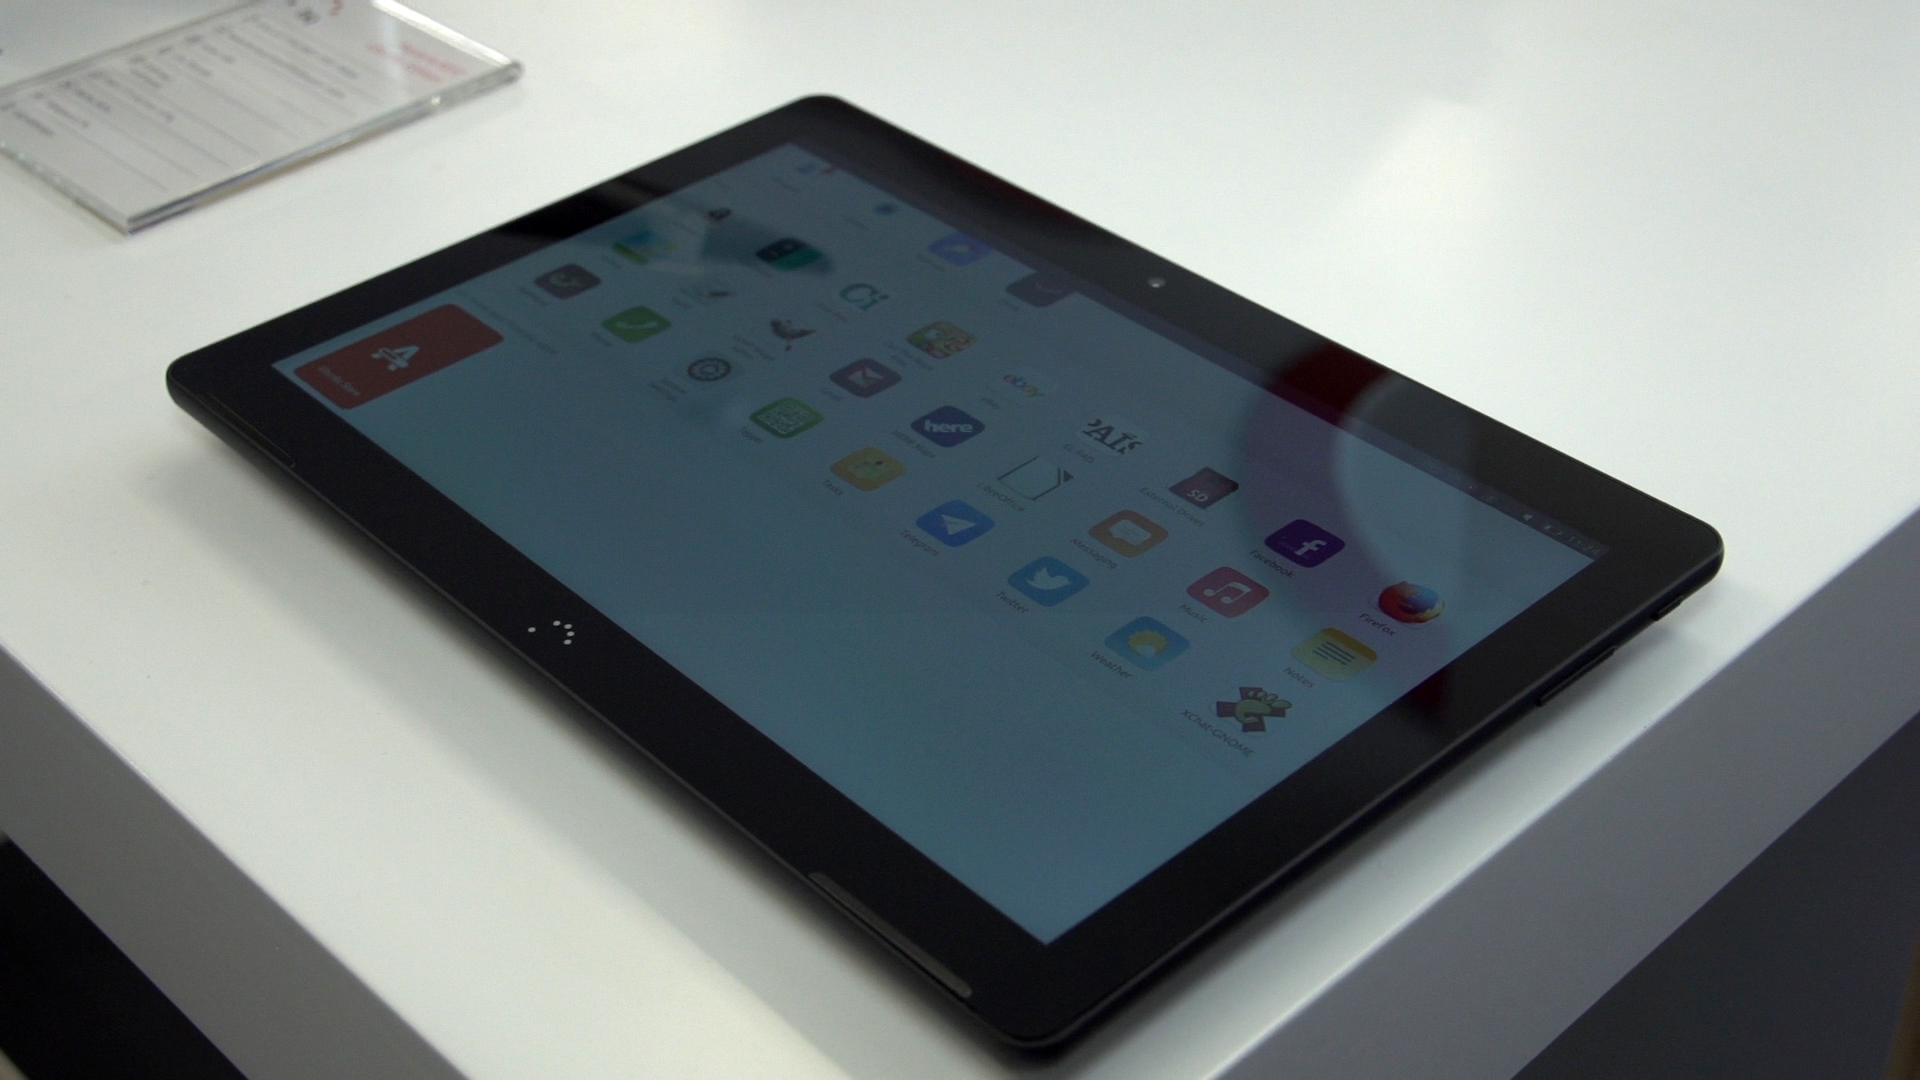 Video: This Ubuntu tablet switches to desktop mode when you plug in a keyboard